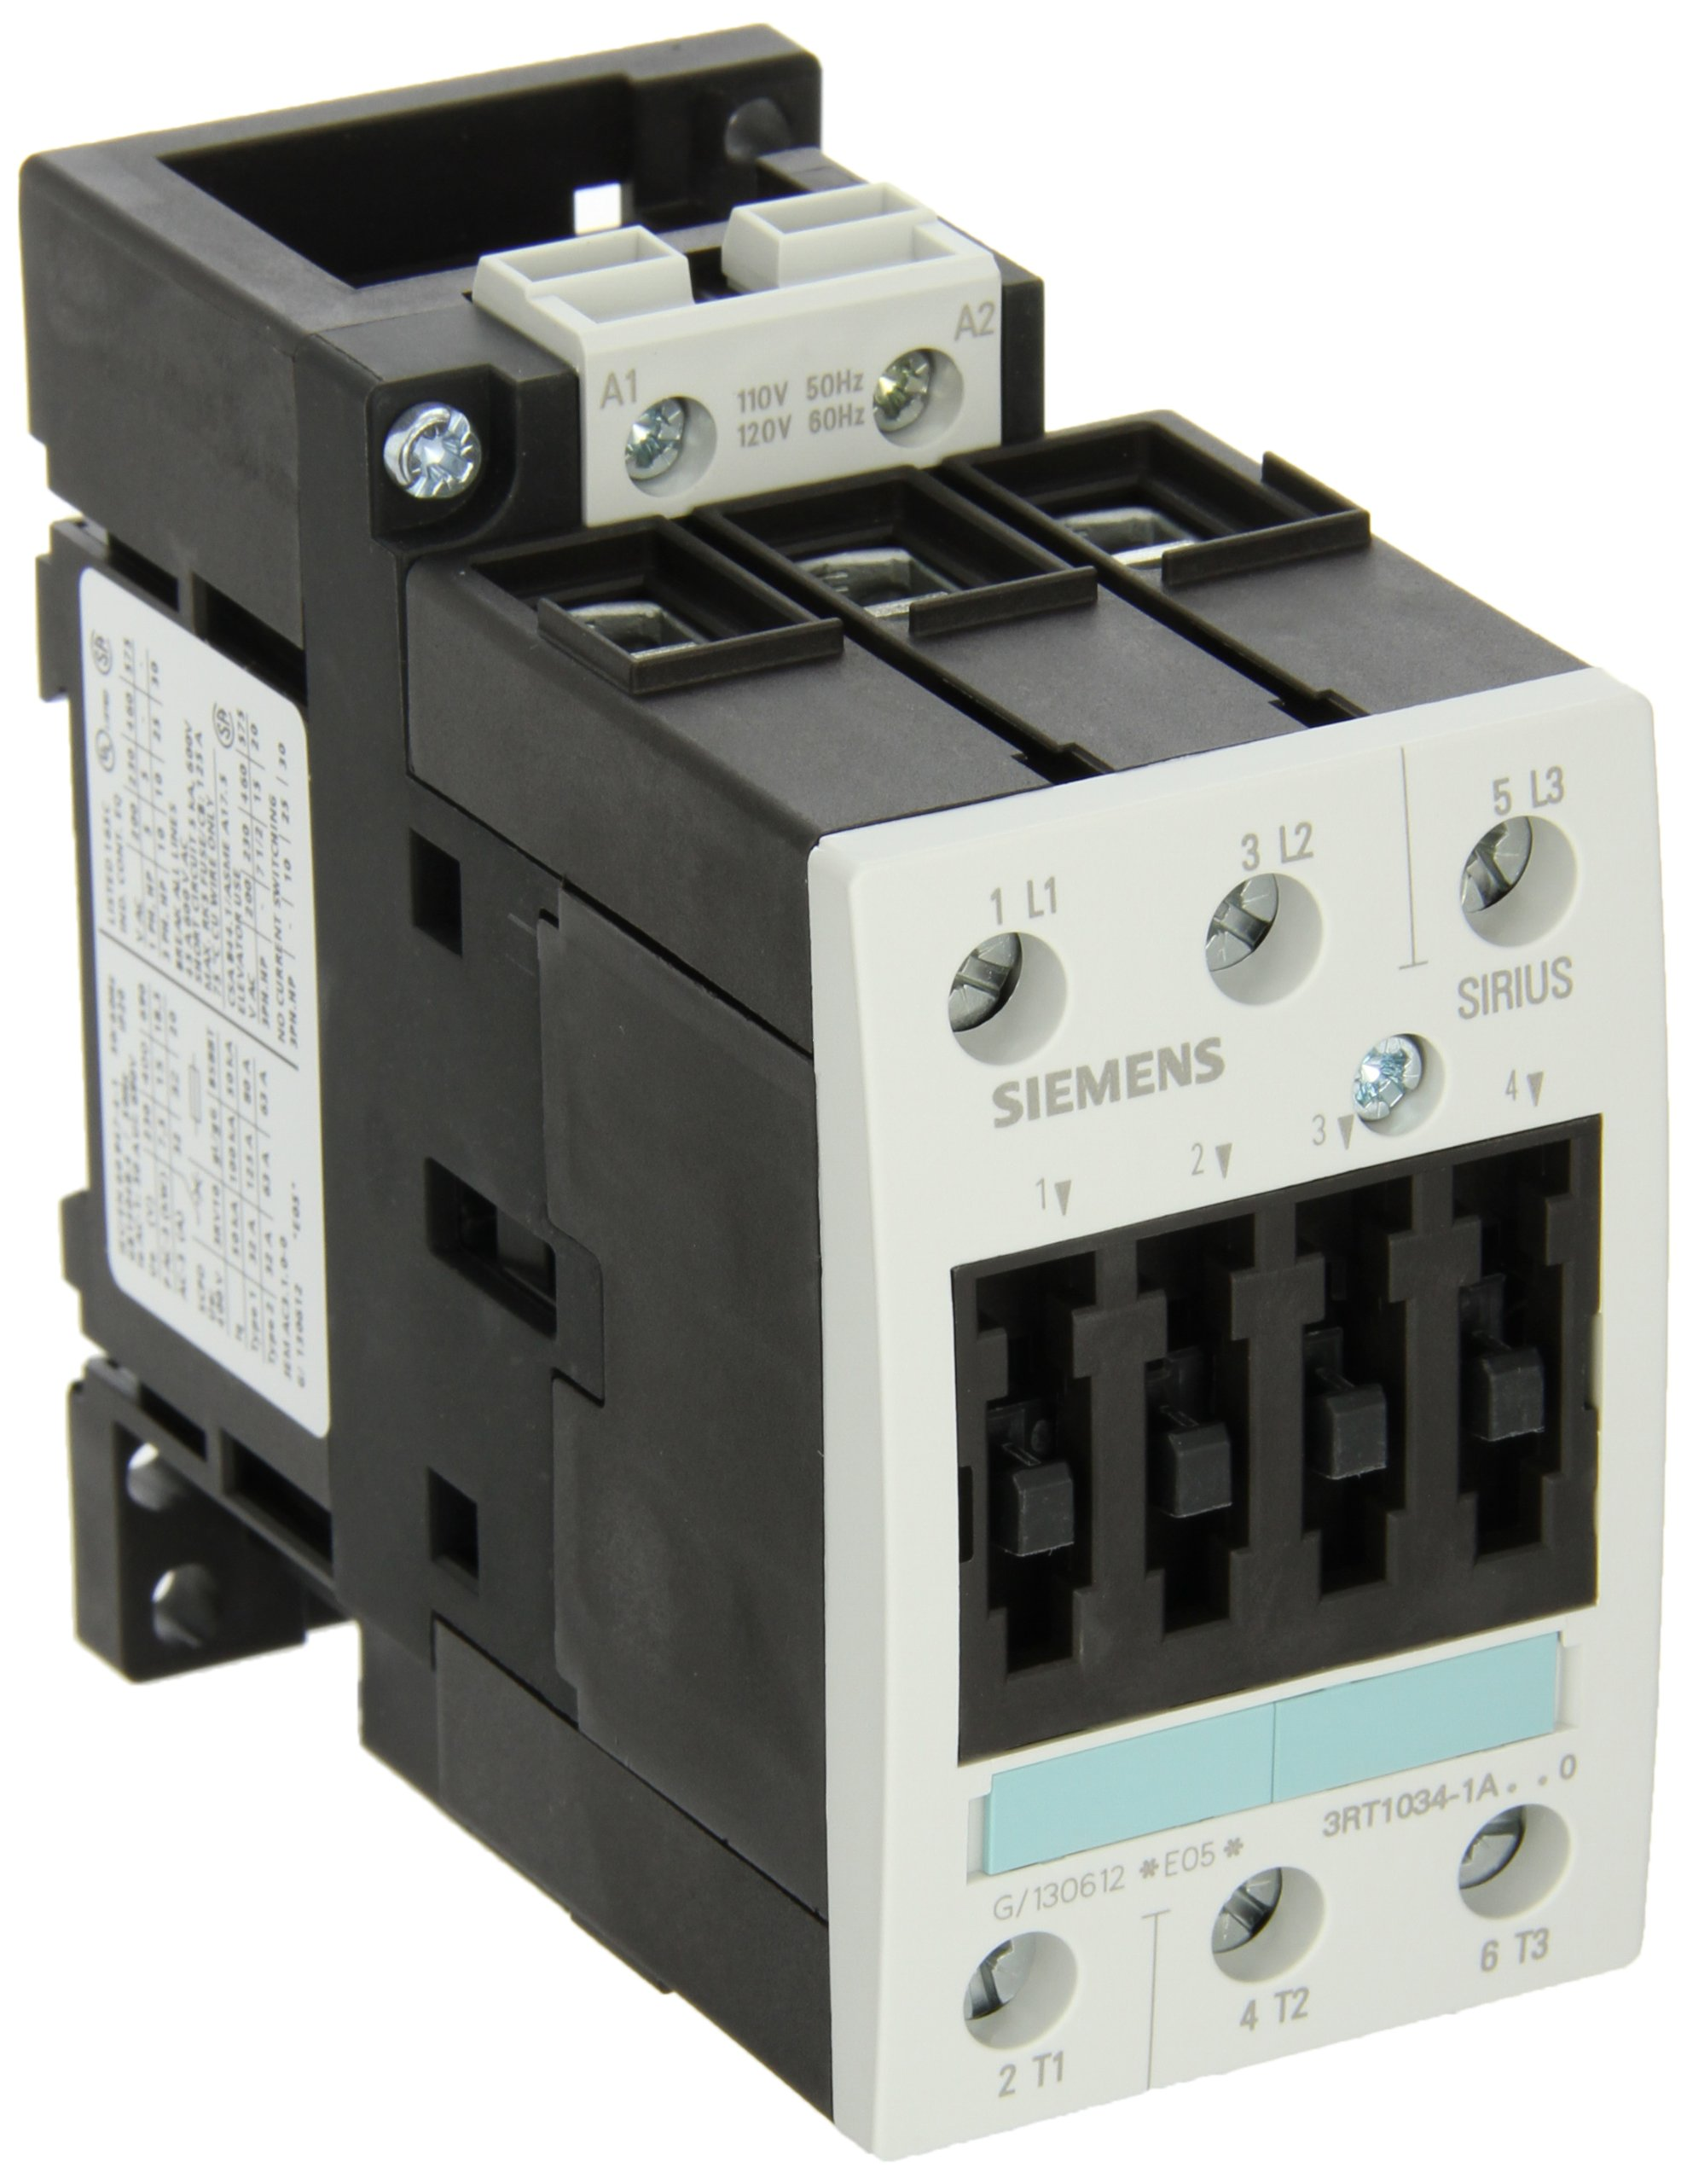 Siemens 3RT10 34-1AK60 Motor Contactor, 3 Poles, Screw Terminals, S2 Frame Size, 120V at 60Hz and 110V at 50Hz AC Coil Voltage Voltage by SIEMENS (Image #1)